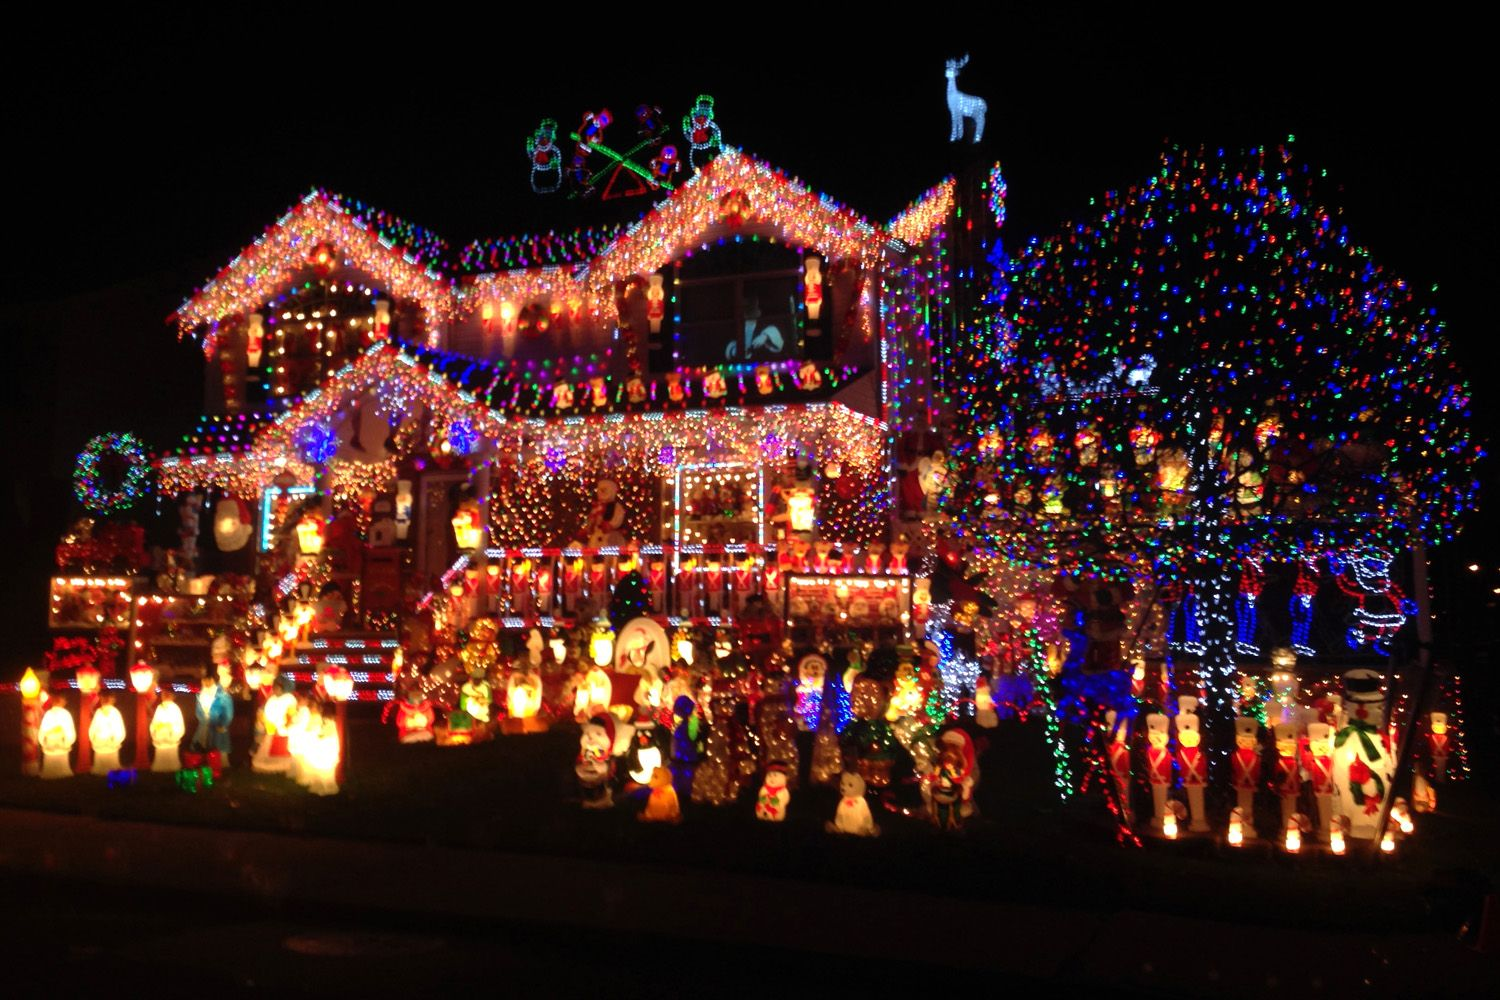 http://amazows.com/gallery/house-christmas-lights.dsgn